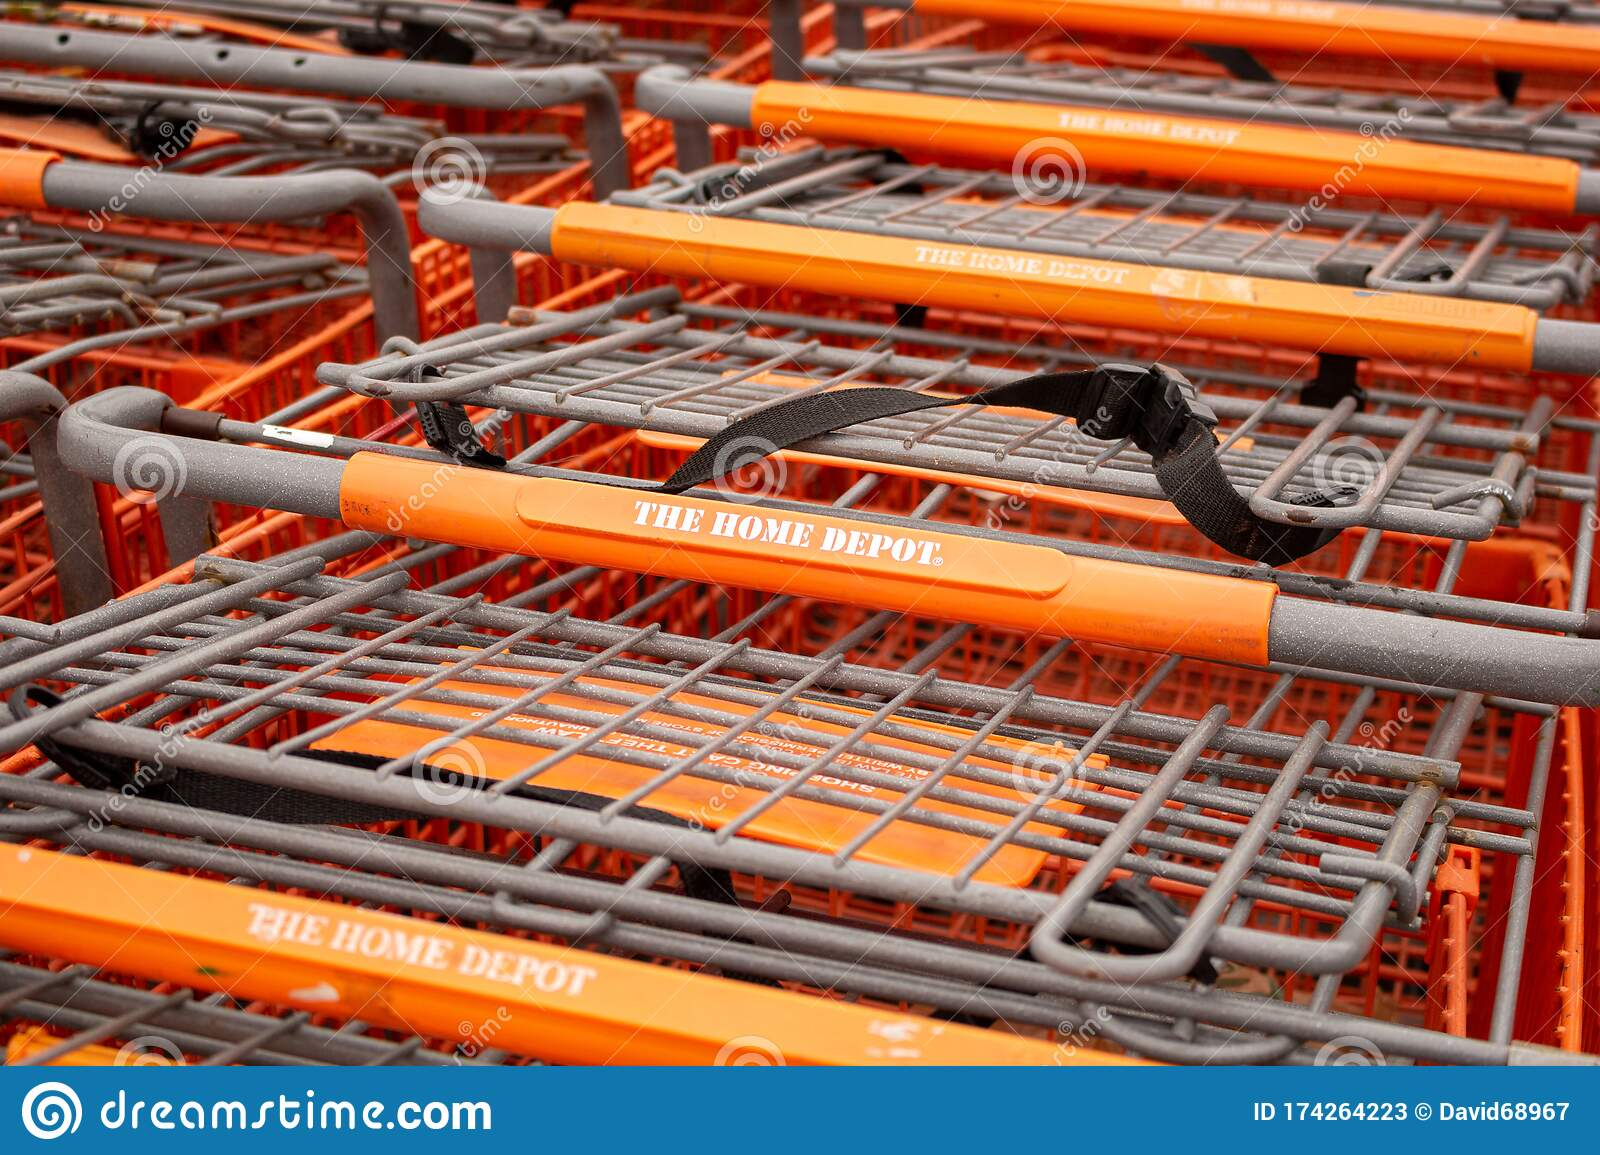 Home Depot Carts Editorial Stock Photo Image Of Building 174264223